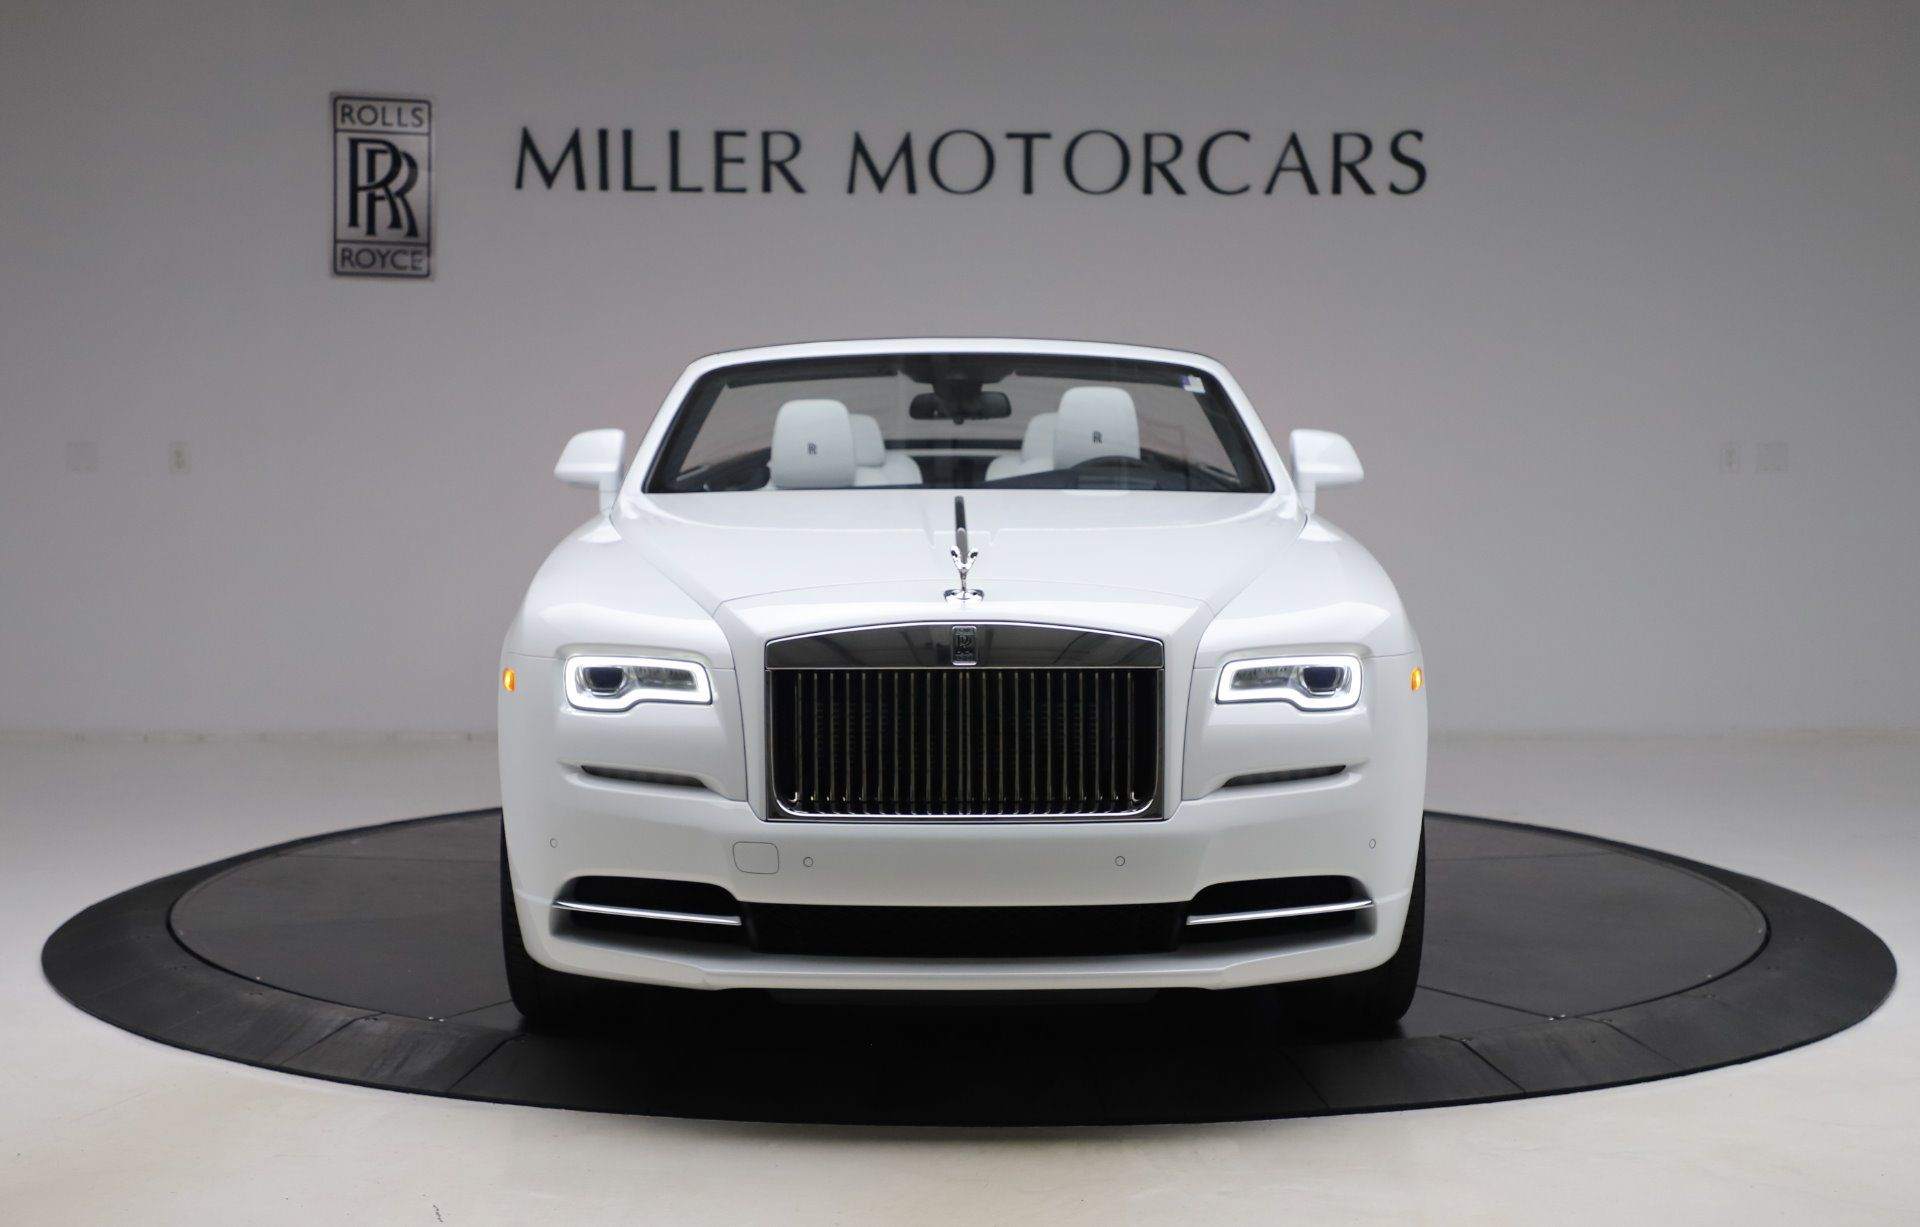 For Sale 2020 Rolls Royce Dawn Miller Motorcars United States For Sale On Luxurypulse In 2020 Rolls Royce Dawn Rolls Royce Royce